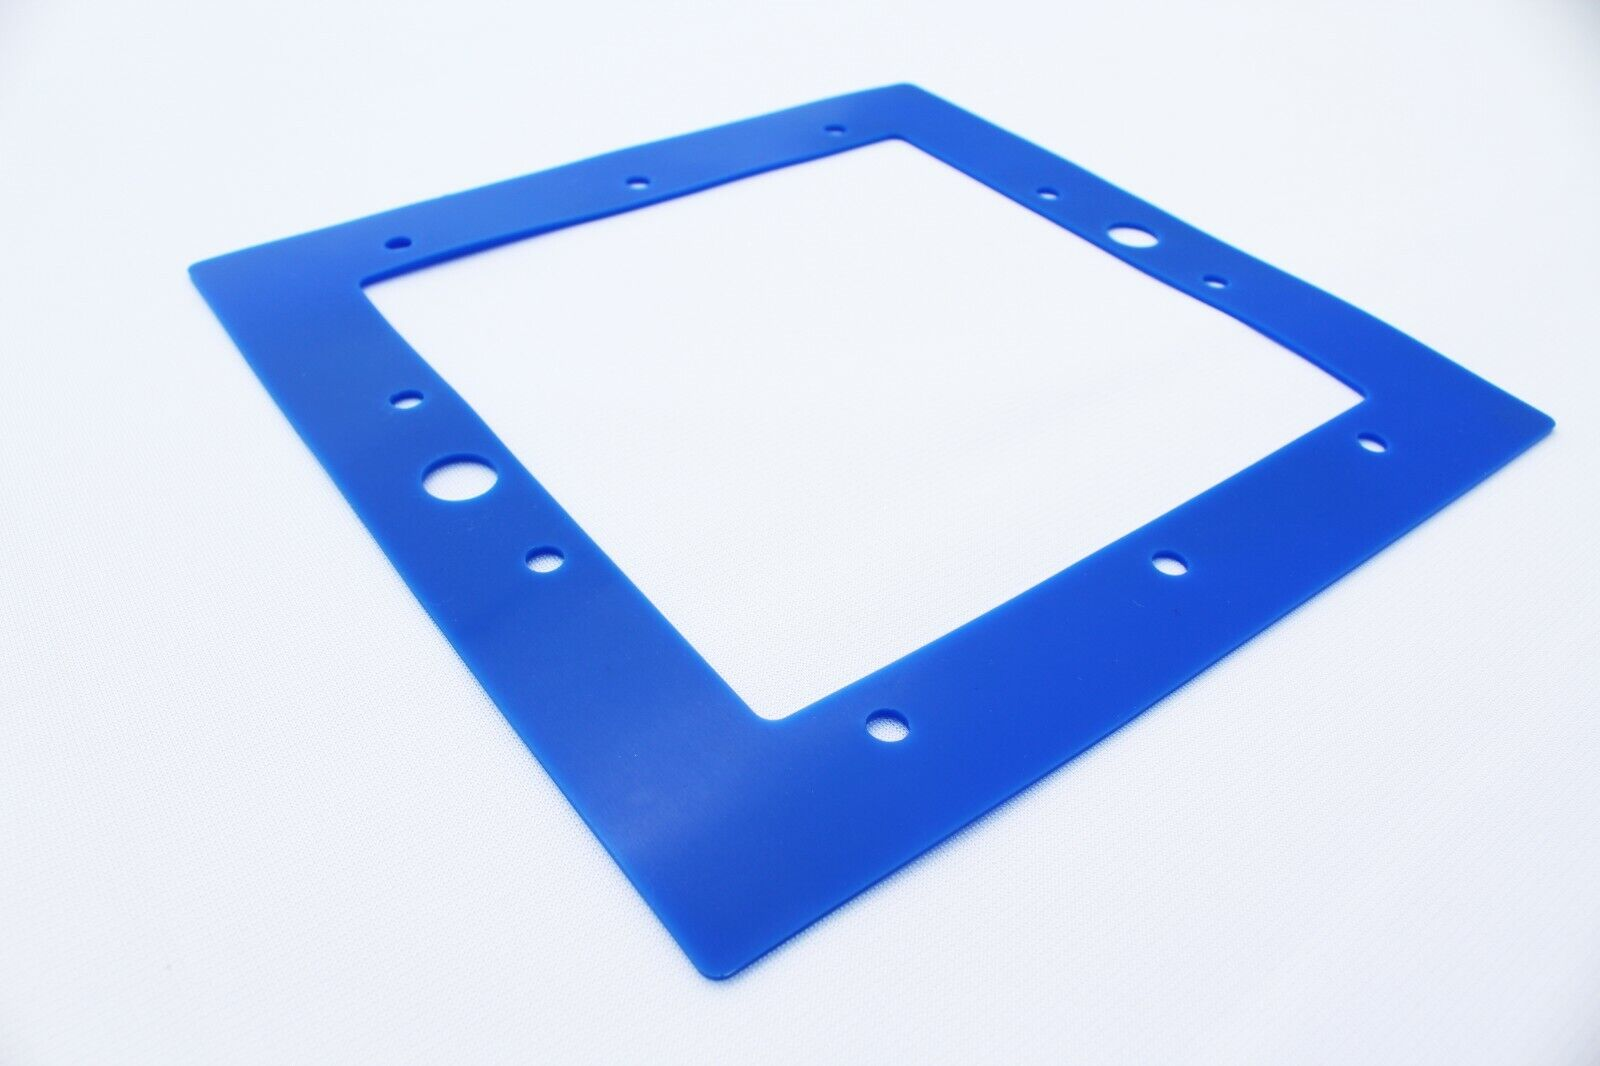 BLUE WHALE Square Skimmer Box Gaskets for Pool Liner (Qty 2), Navy Grip Seal Home & Garden